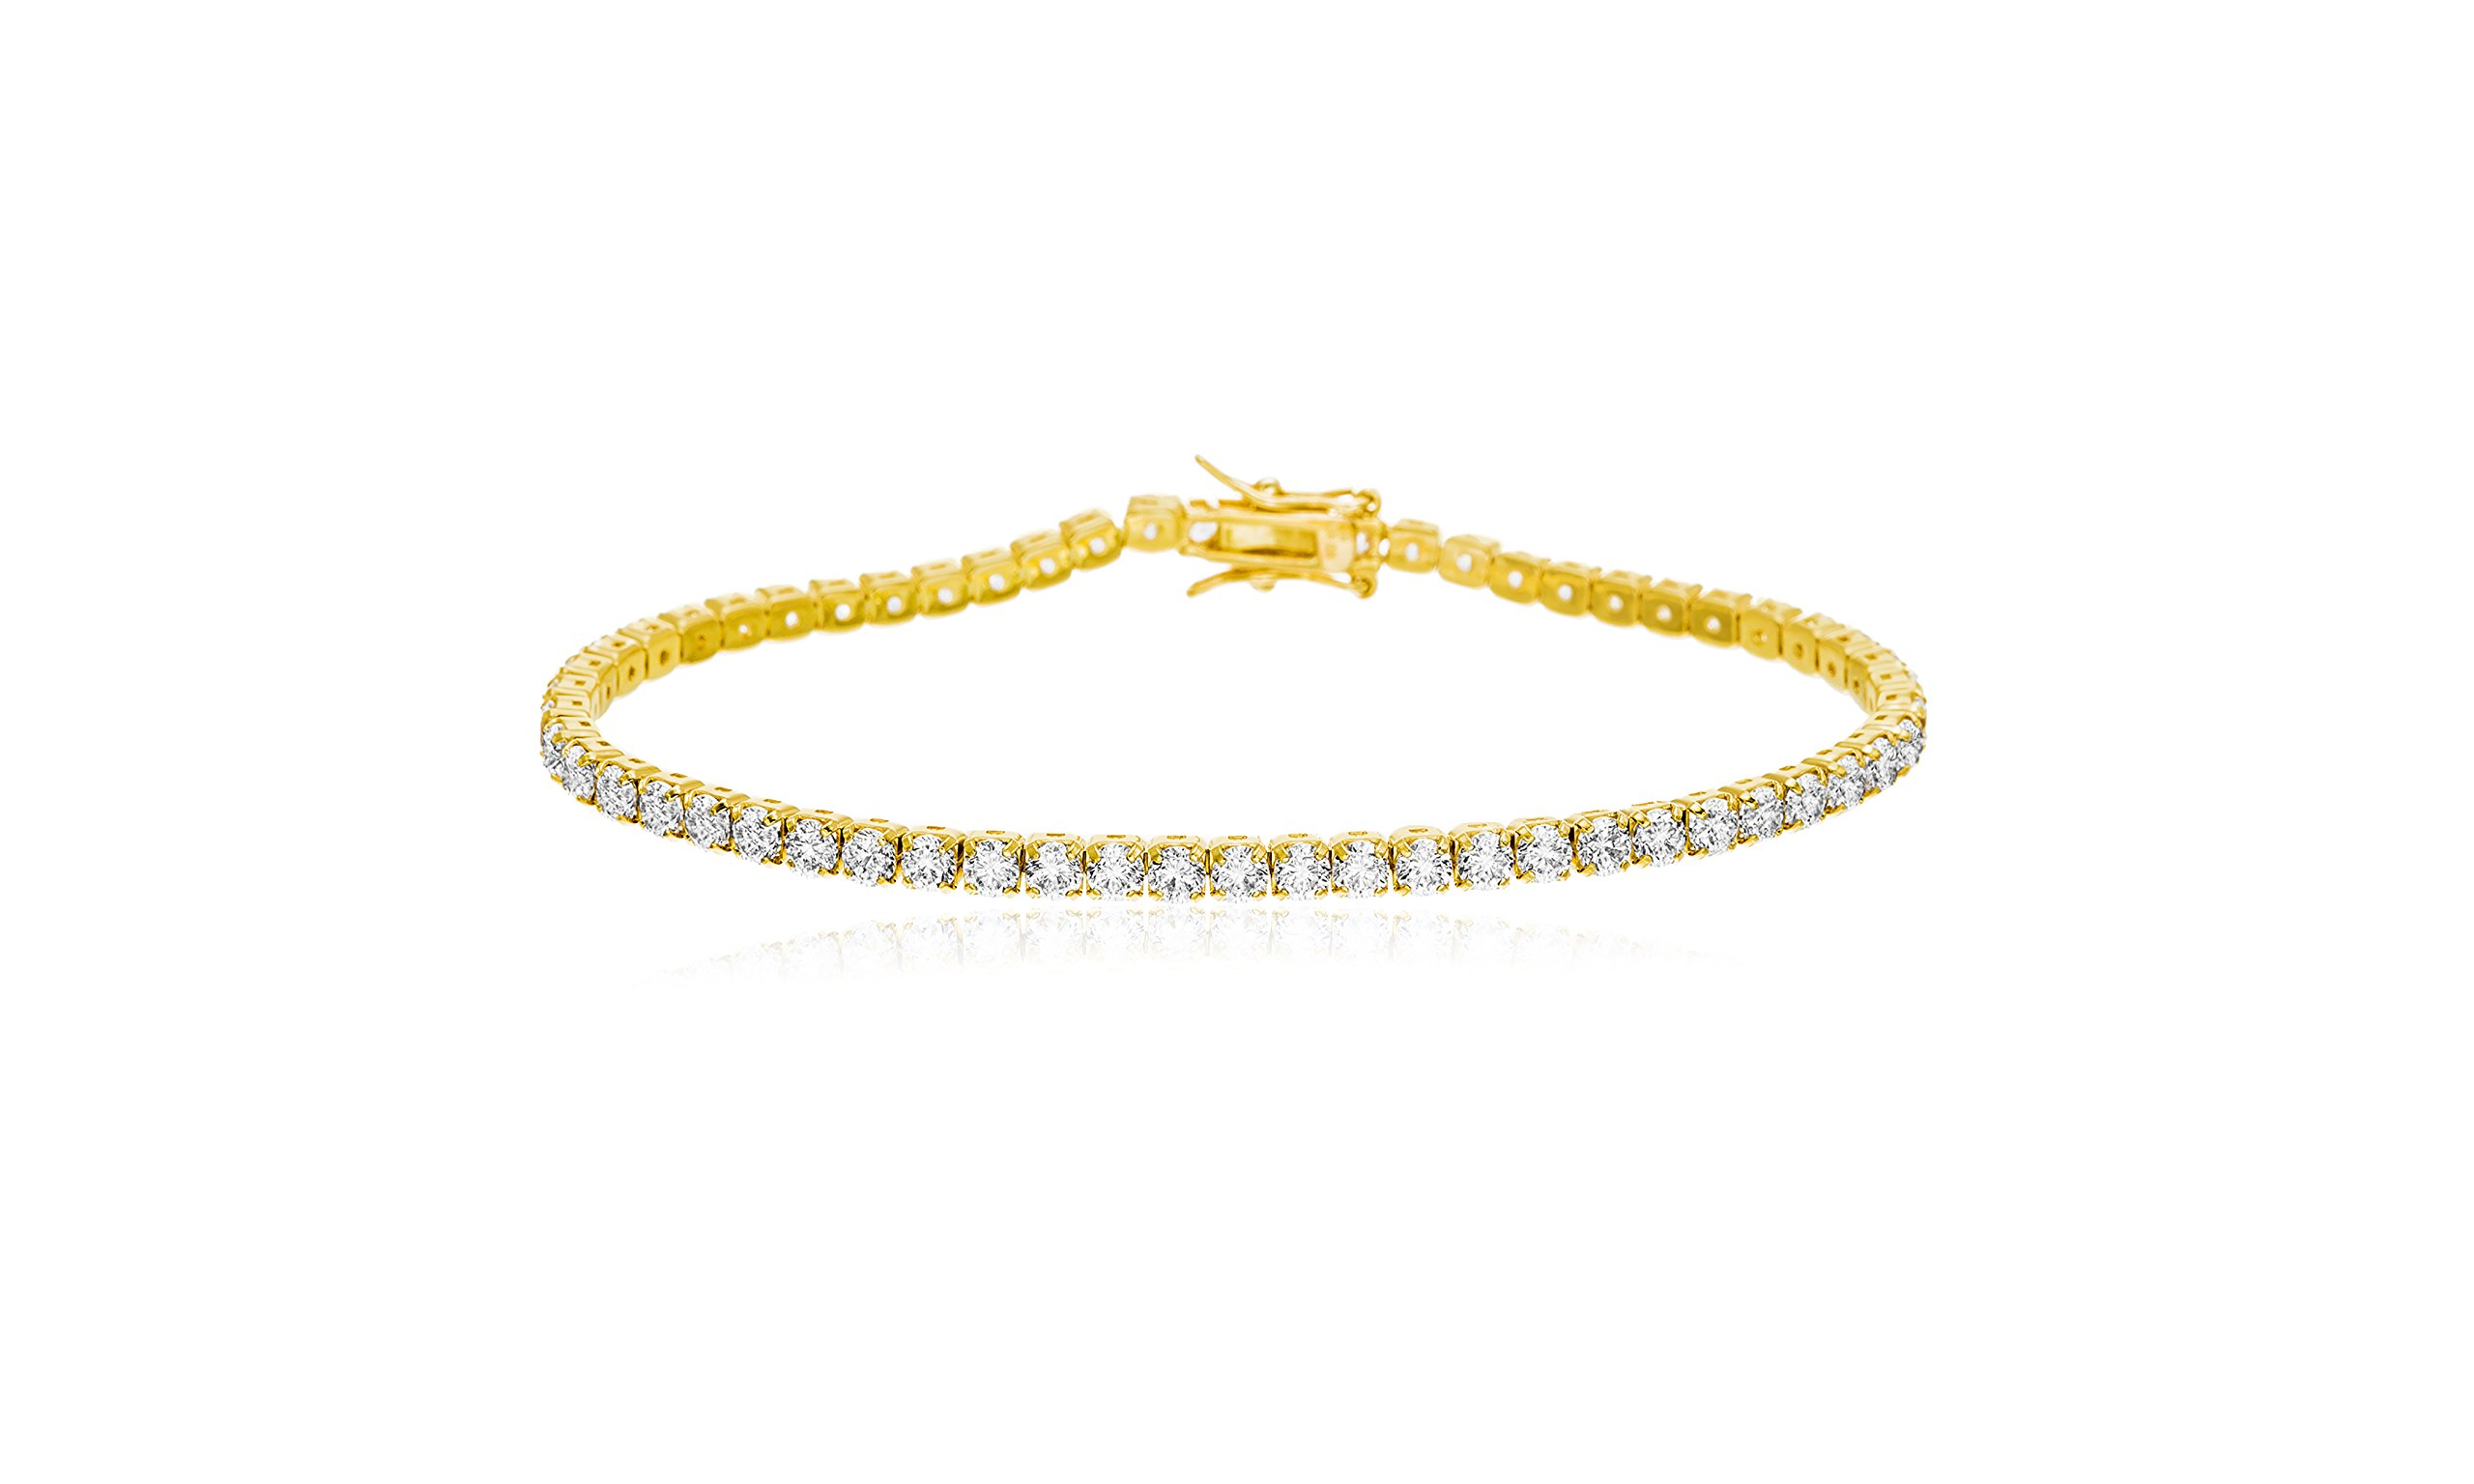 Devin Rose Womens 7.25'' Tennis Bracelet Made With Swarovski Crystals in Yellow Gold Plated Sterling Silver (Yellow)